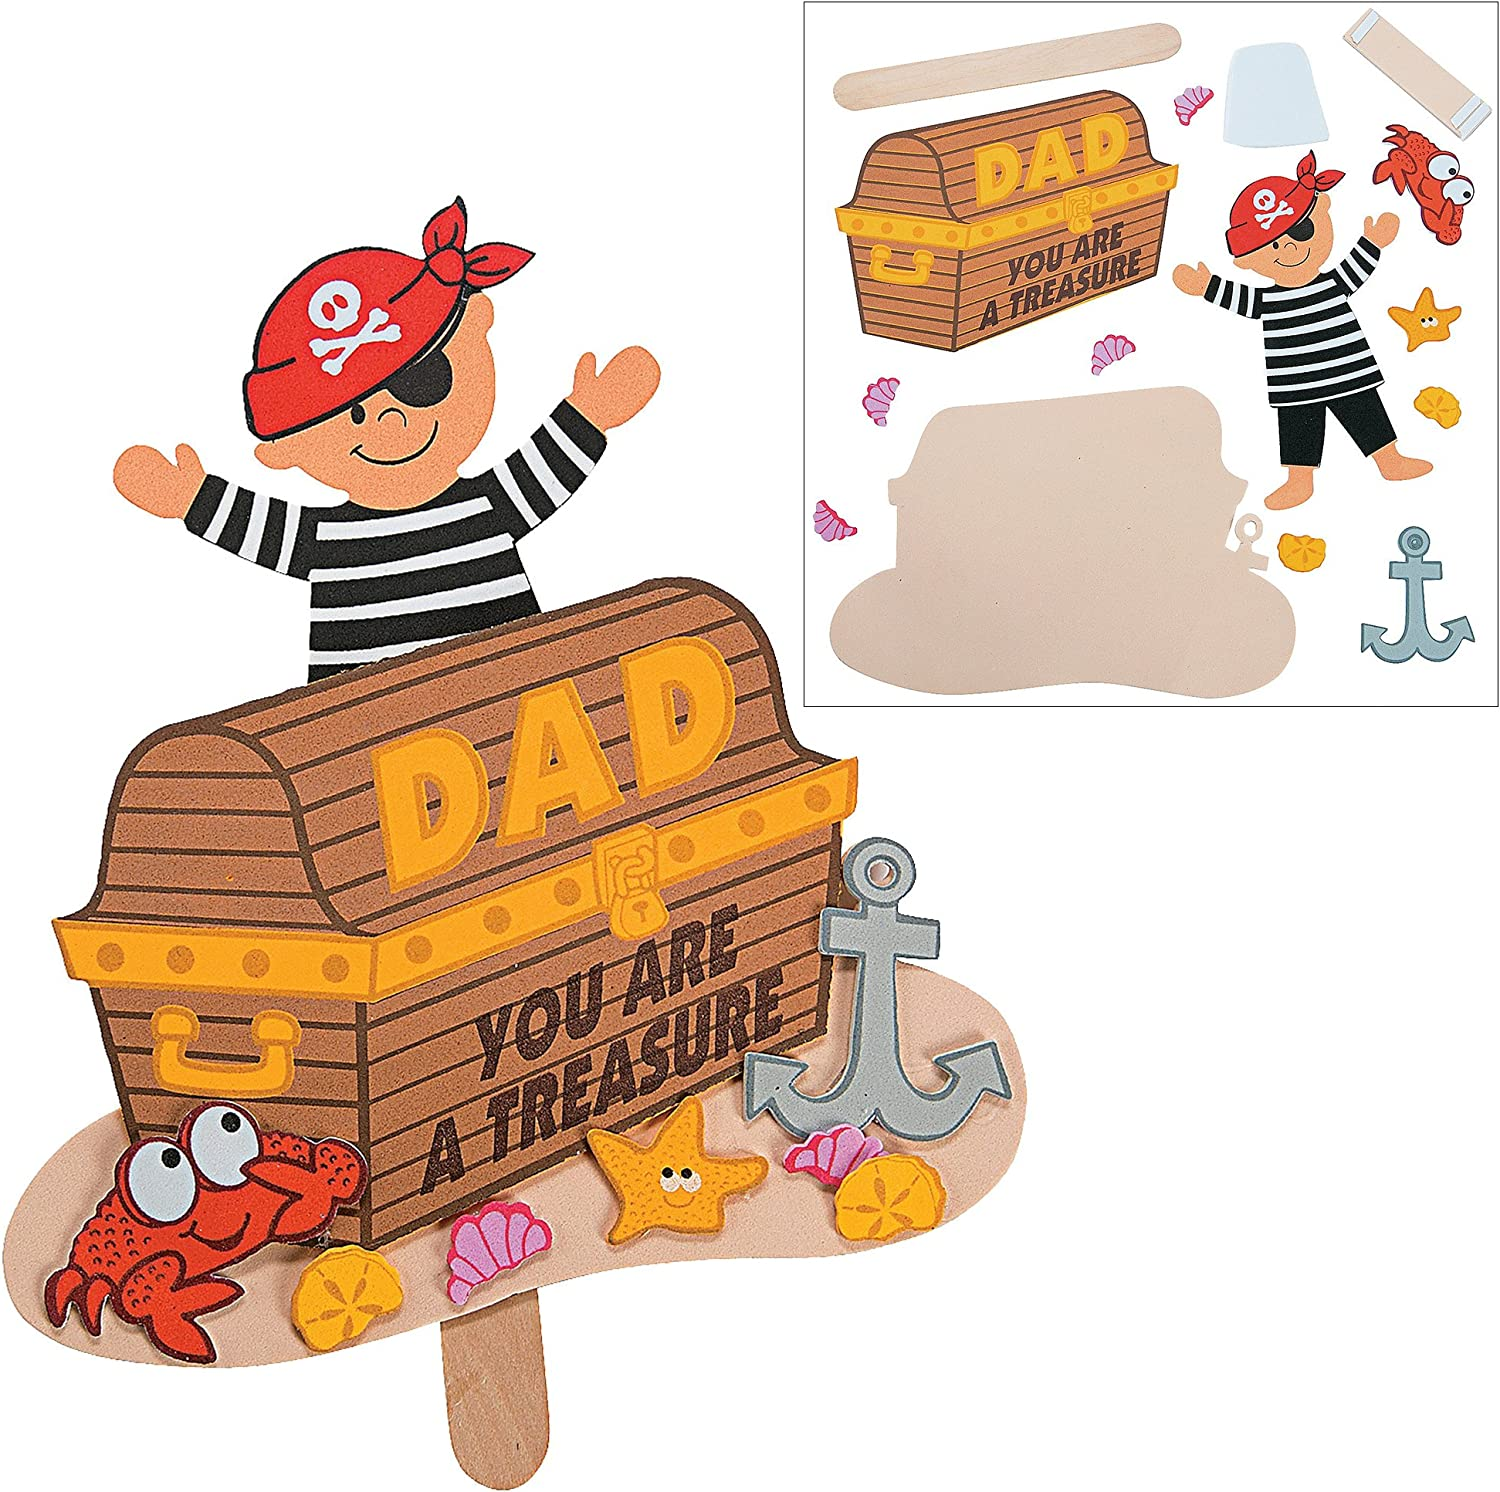 """Super Dad Sticker Cards Fathers Day DIY Craft Kit Boy /& Girls Gift Dads Picture Photo Frame Magnet Kit and Color Your Own /""""All About My Dad/"""" Wheels DIY /""""Dad/"""" Keychains Pirate Pop-Up Craft"""